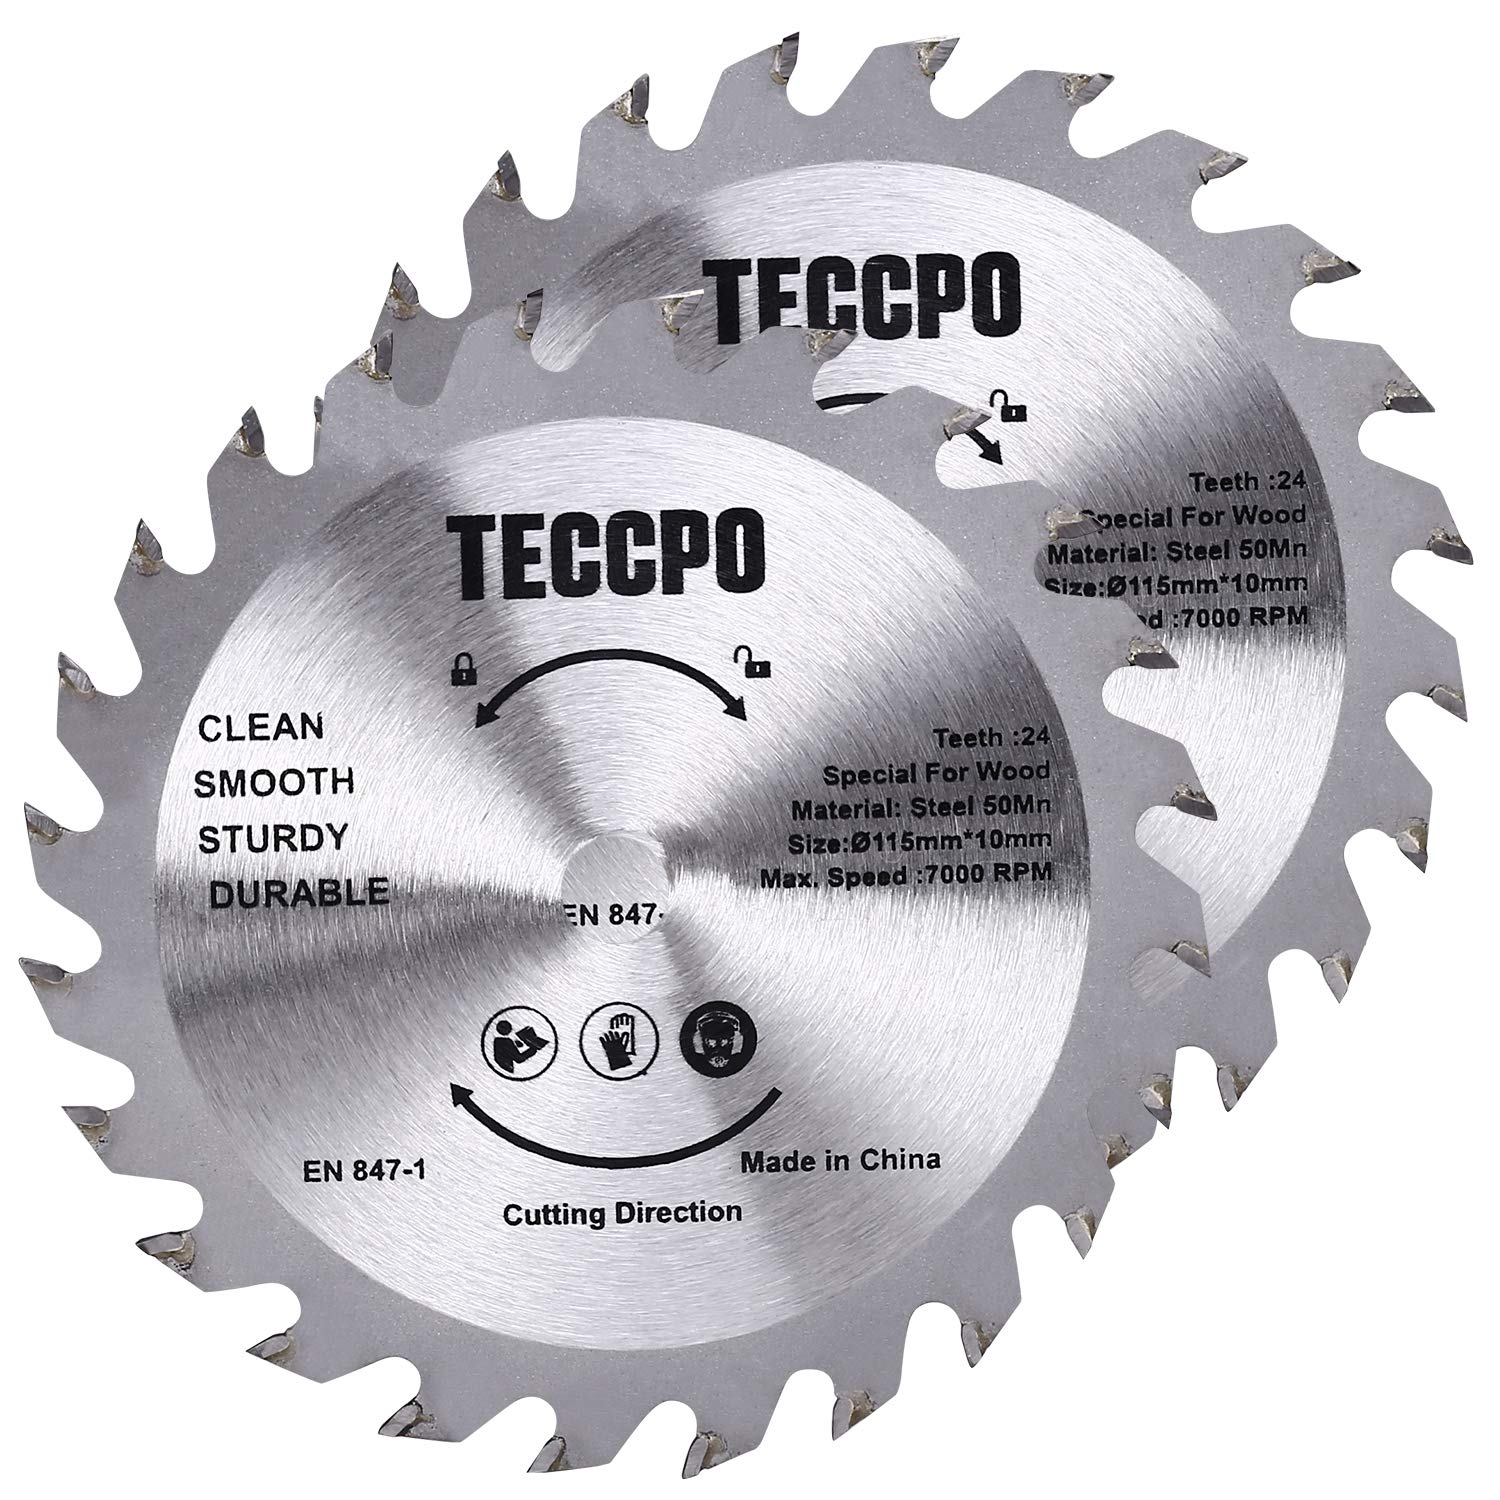 """Professional Circular Saw TECCPO 10Amp Lightweight 7-1//4"""" 5800 RPM Saw with Scal"""